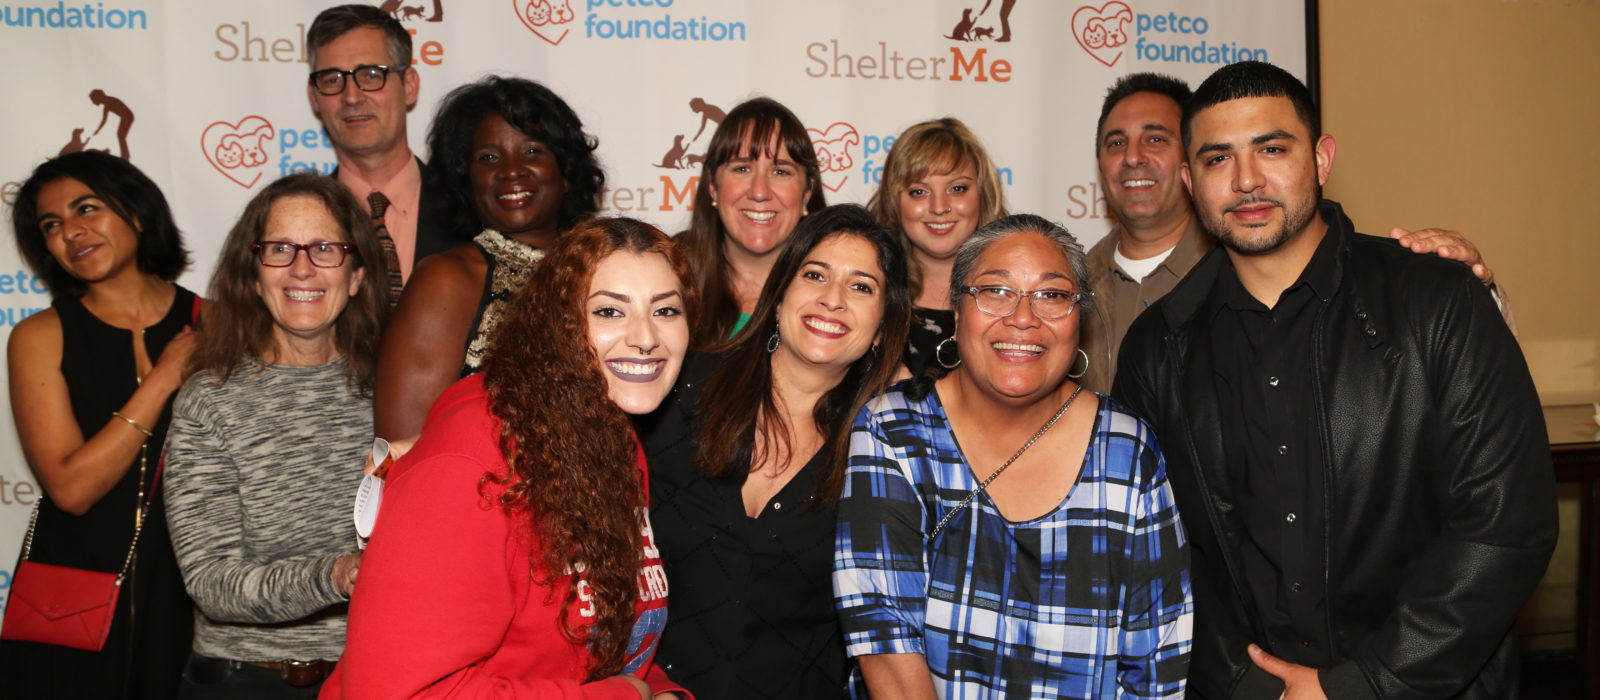 OAS Awarded $90,000 Grant, Featured In Upcoming Episode of National PBS Series Shelter Me